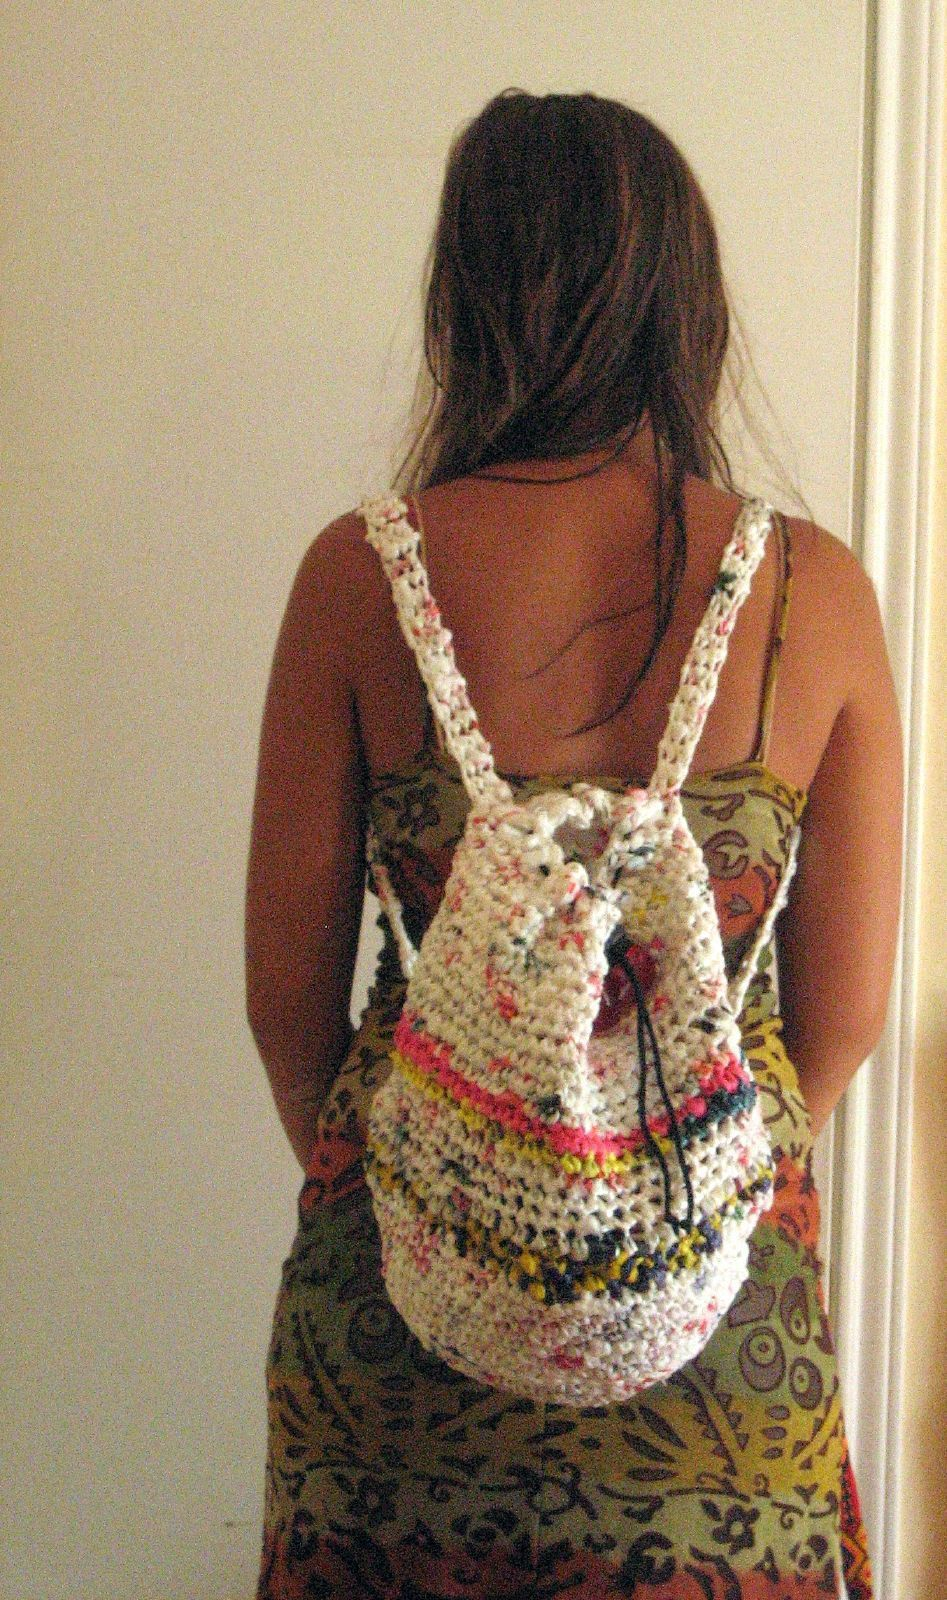 Plarn backpack with paracord drawstring | Knitting/crochet ...